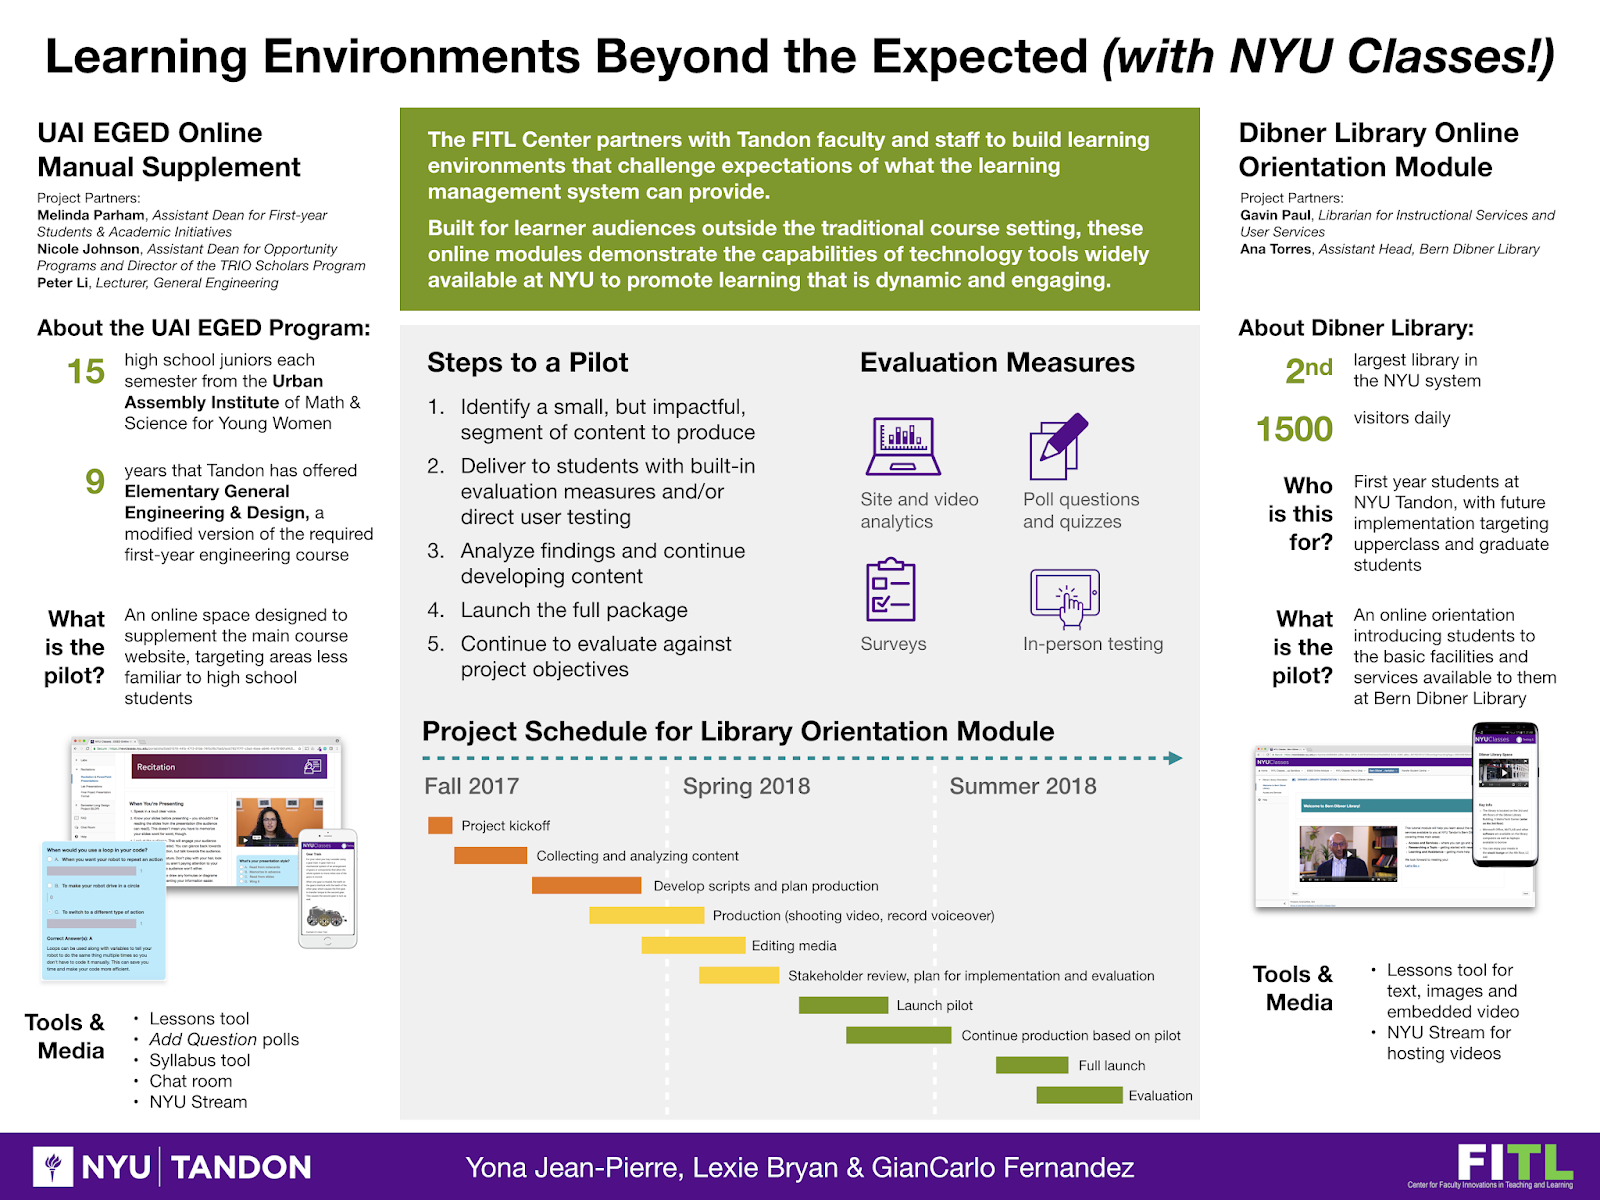 FITL at NYU TorchTech ShareFair 2018: Learning Environments